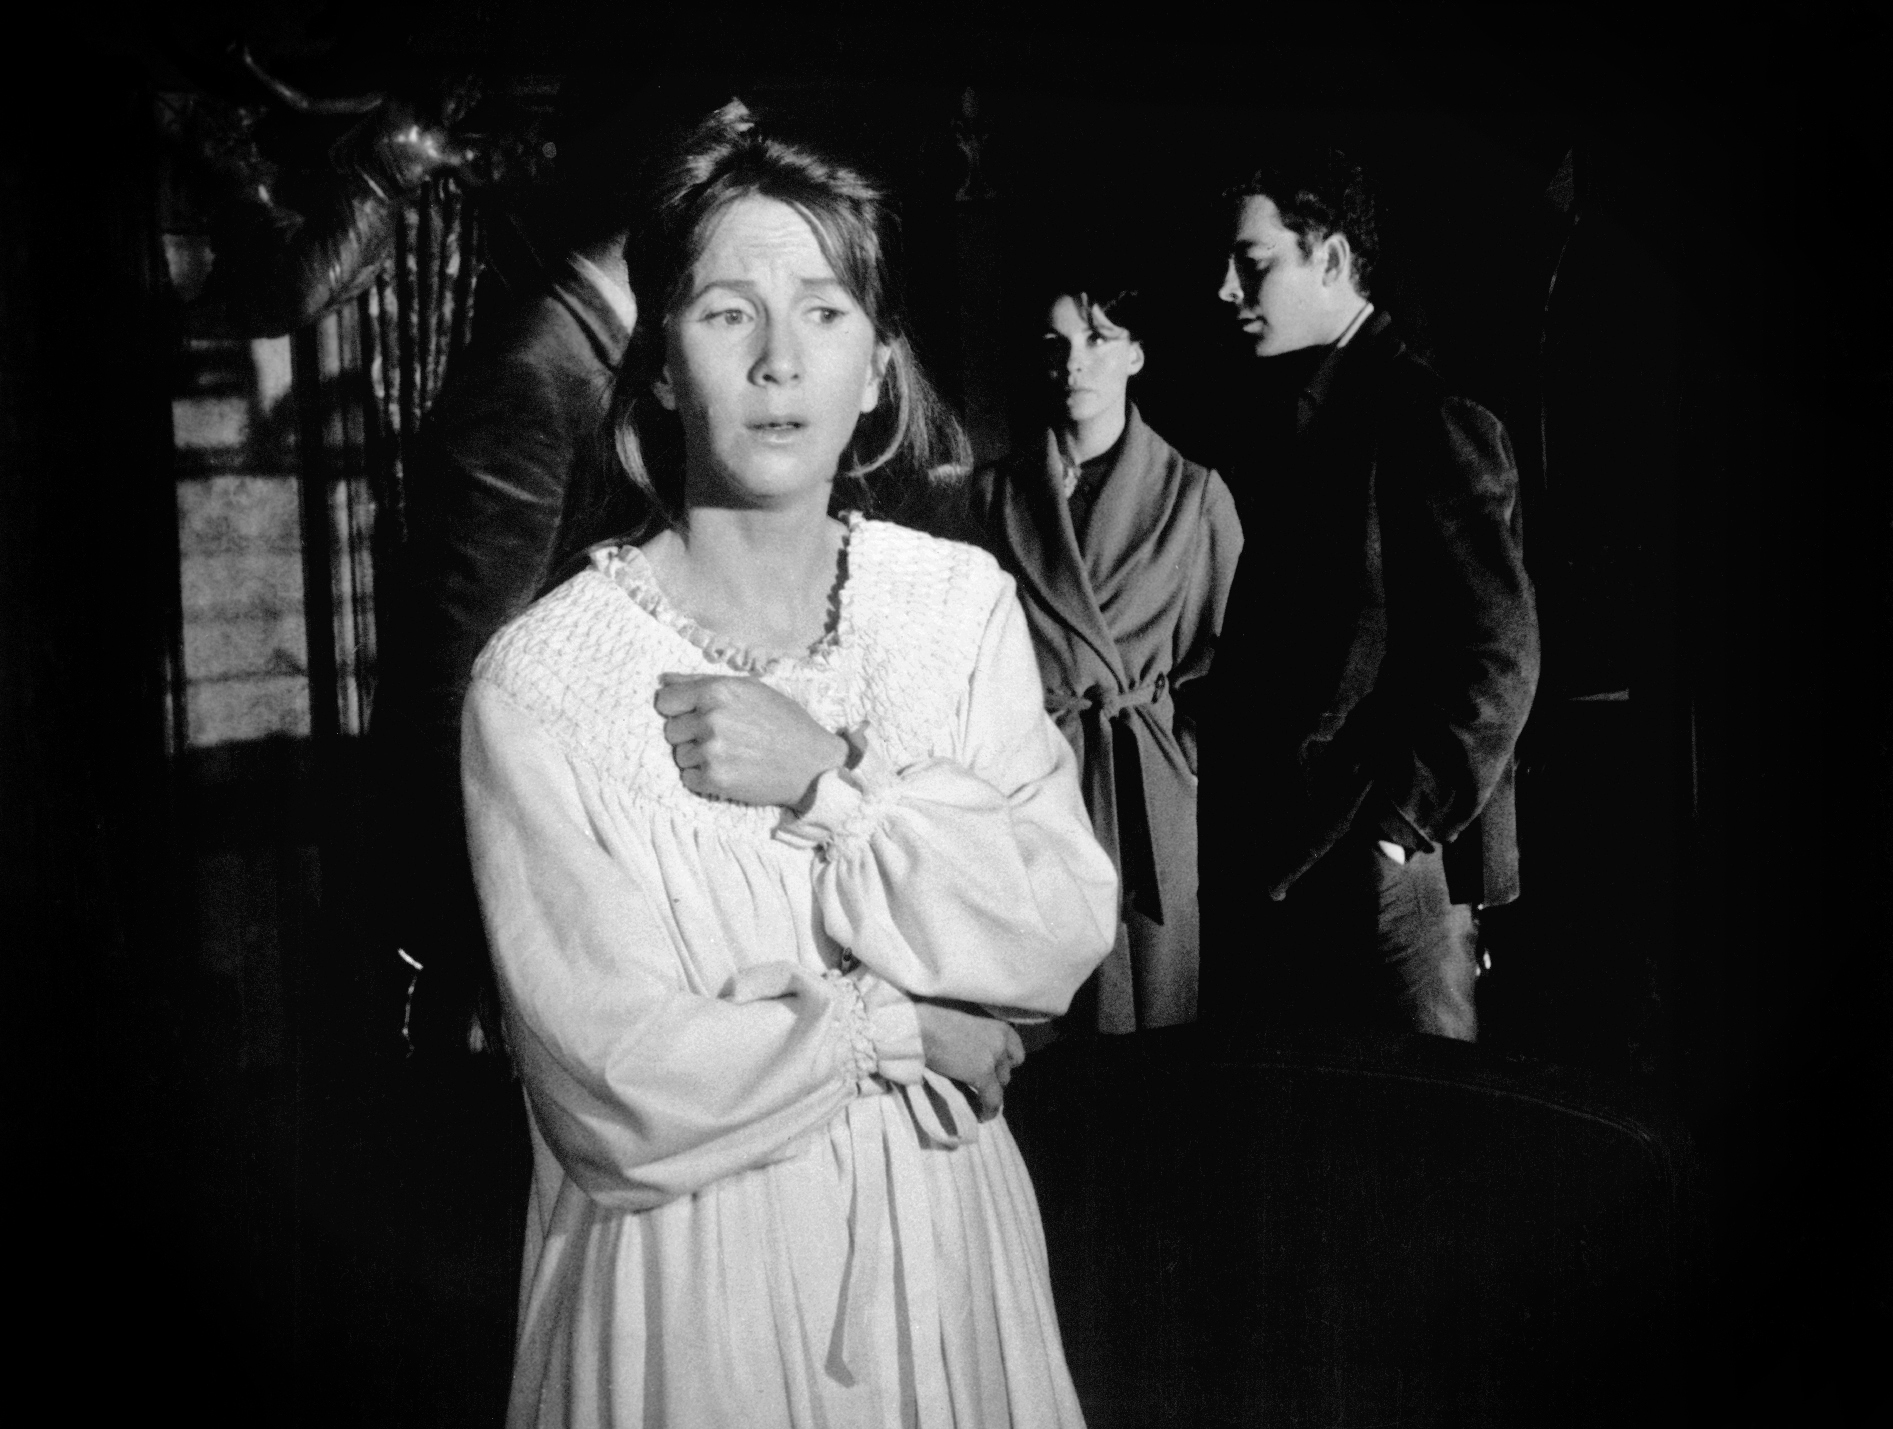 c978dd01a4e Flashback  The Haunting (1963) - The American Society of ...